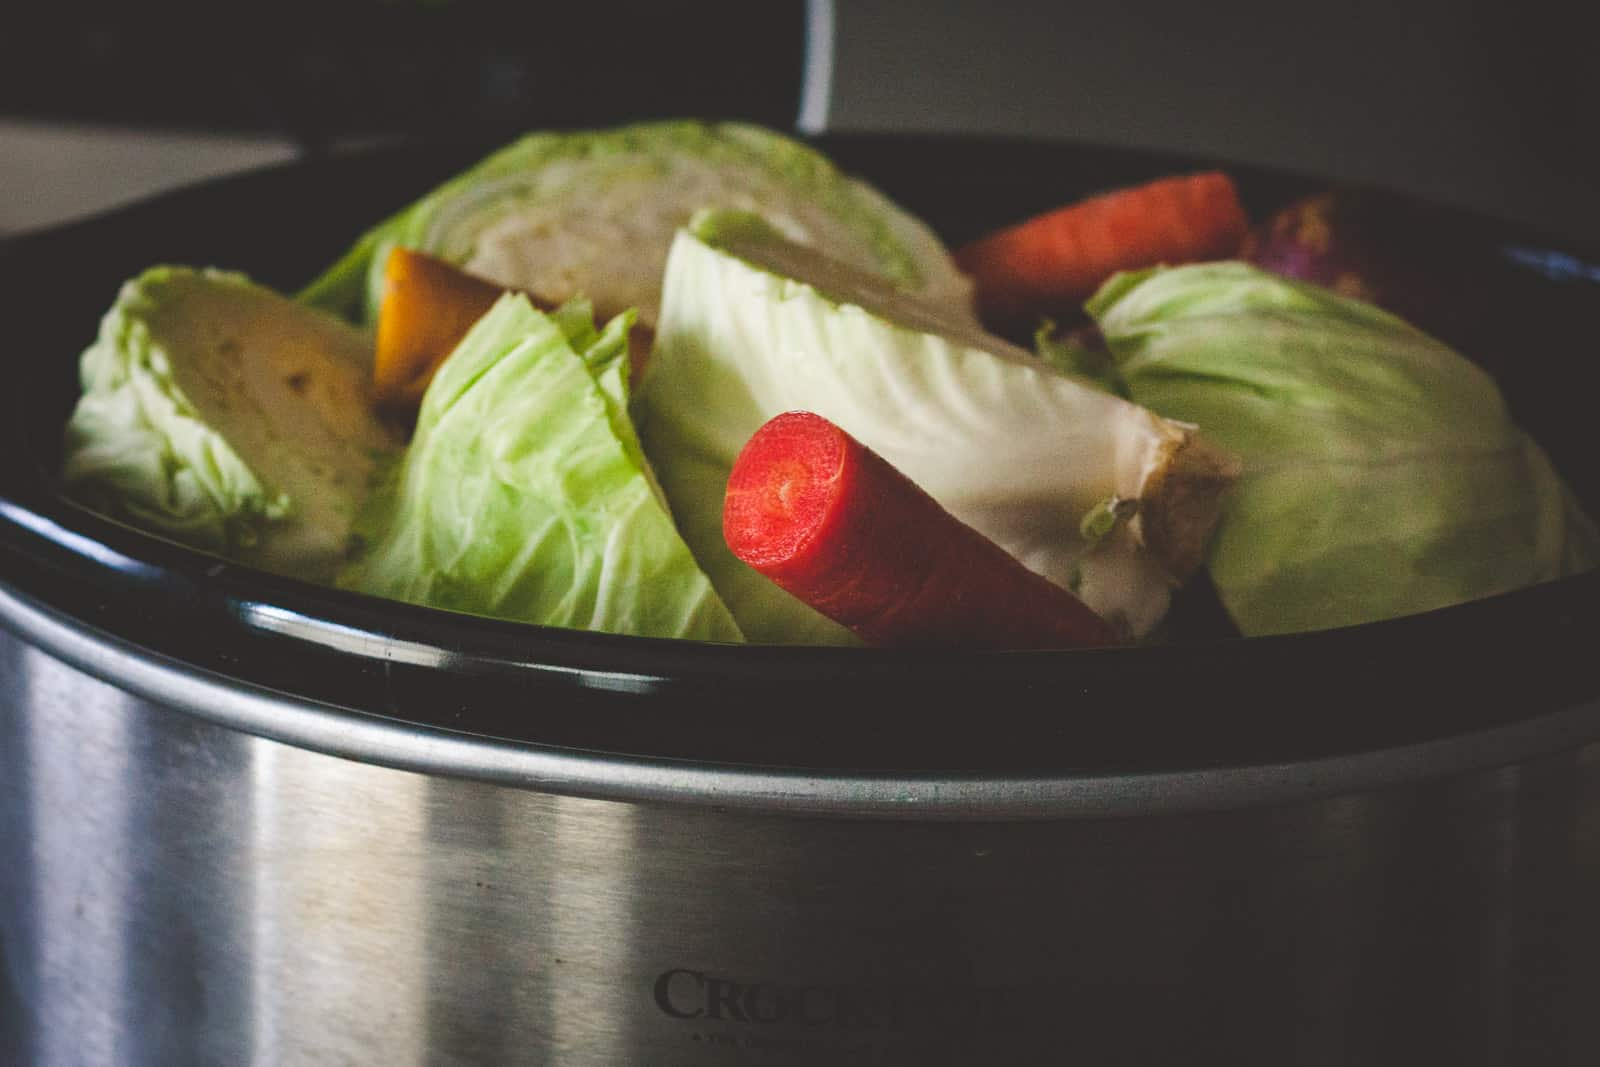 5 ingredient crockpot corned beef cabbage carrots and potatoes recipe for St. Patrick's day